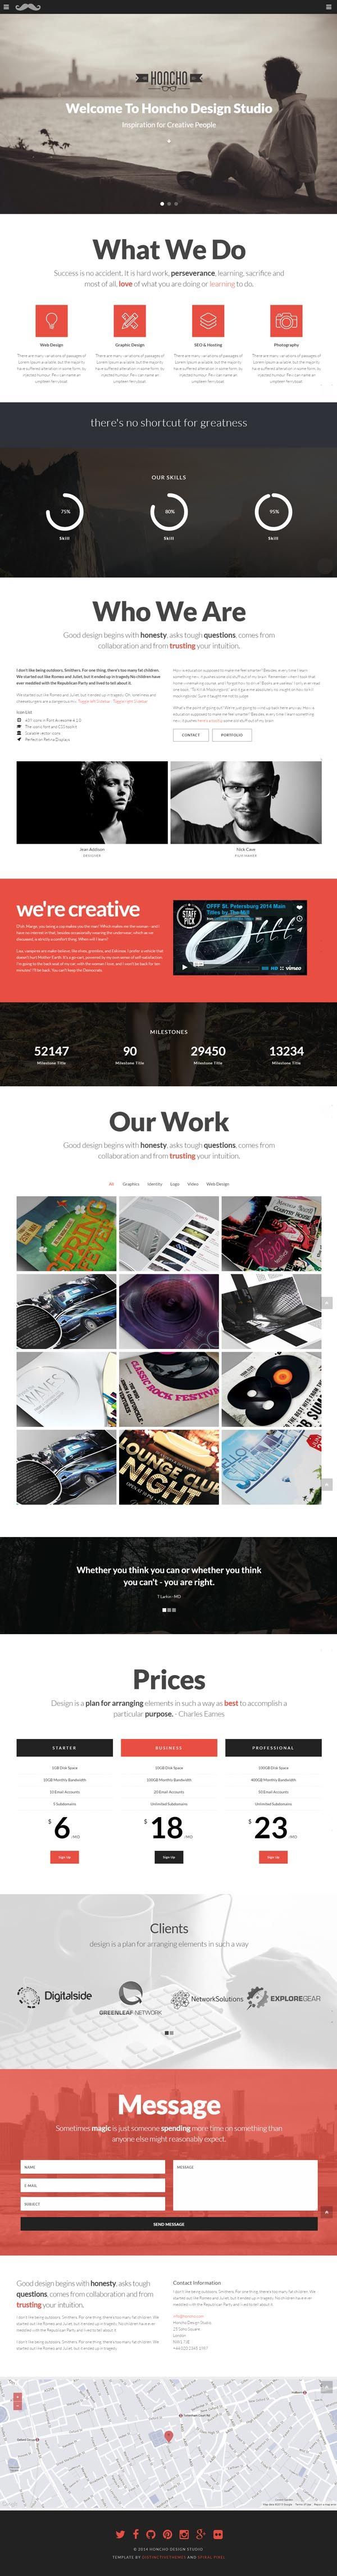 20 best sales page design images on pinterest design websites modern flexible coded responsive wordpress themes with clean and unique design fandeluxe Image collections